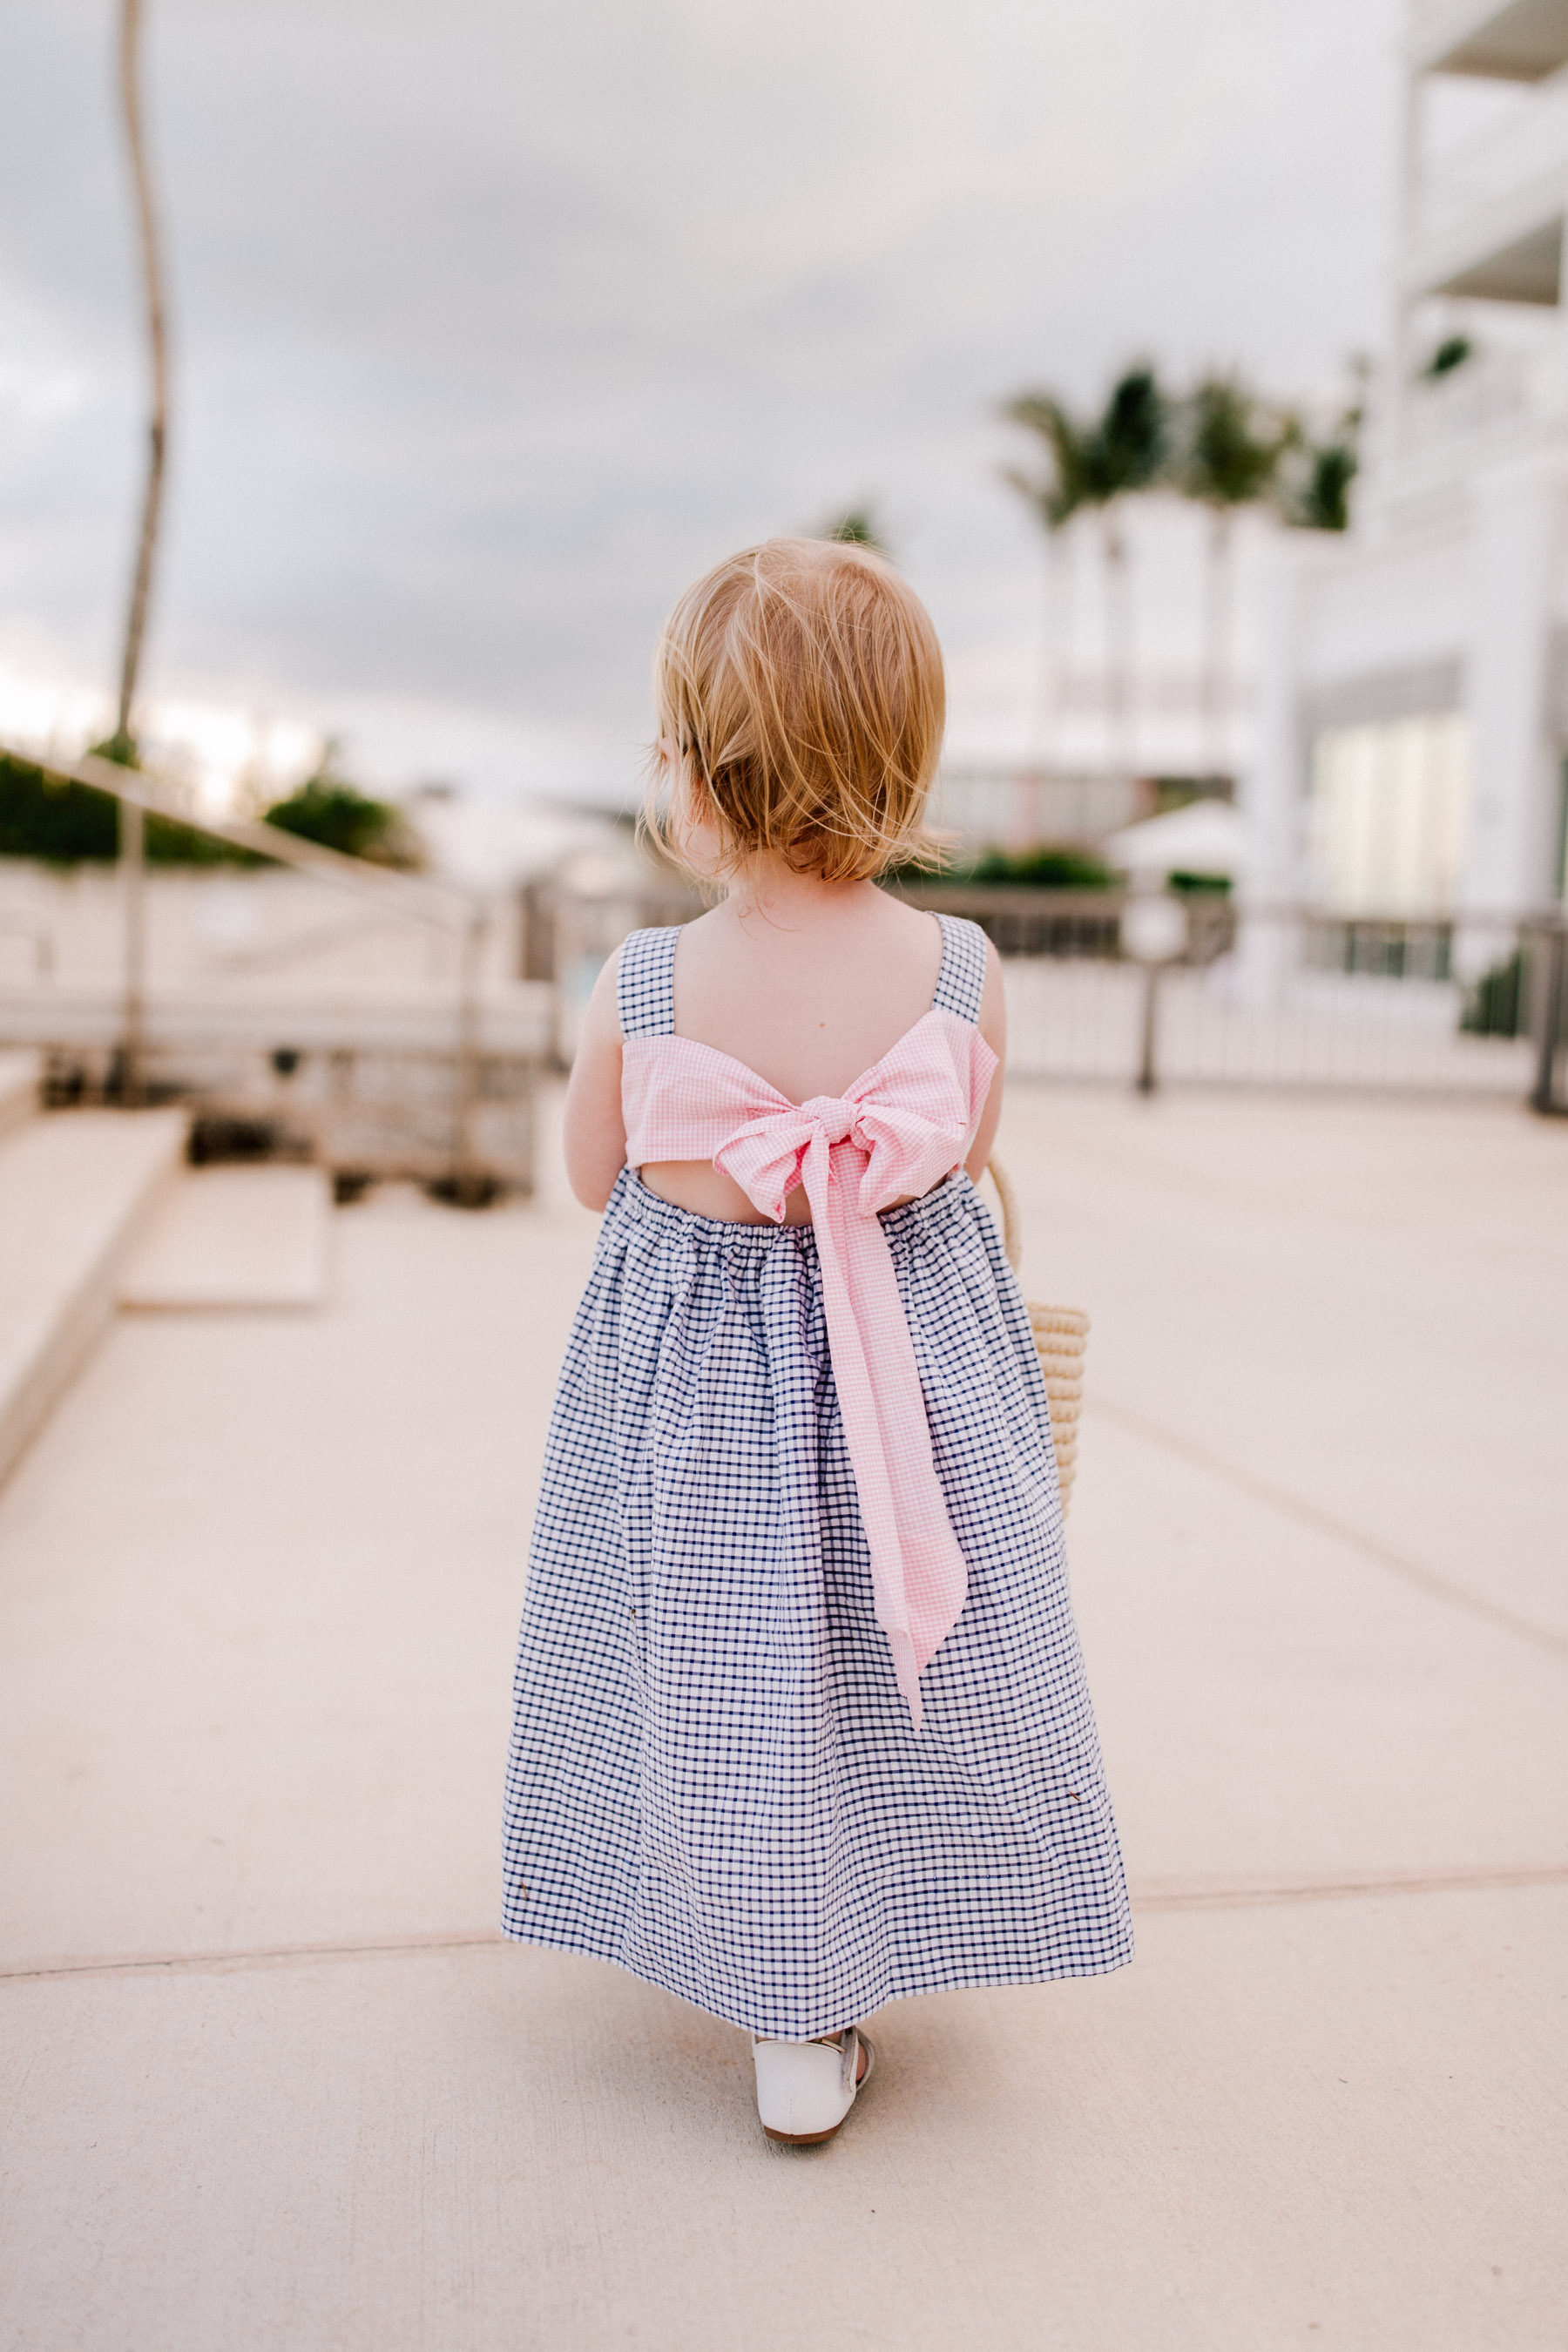 Emma is wearing a Smocked Auctions dress - Kelly in the City